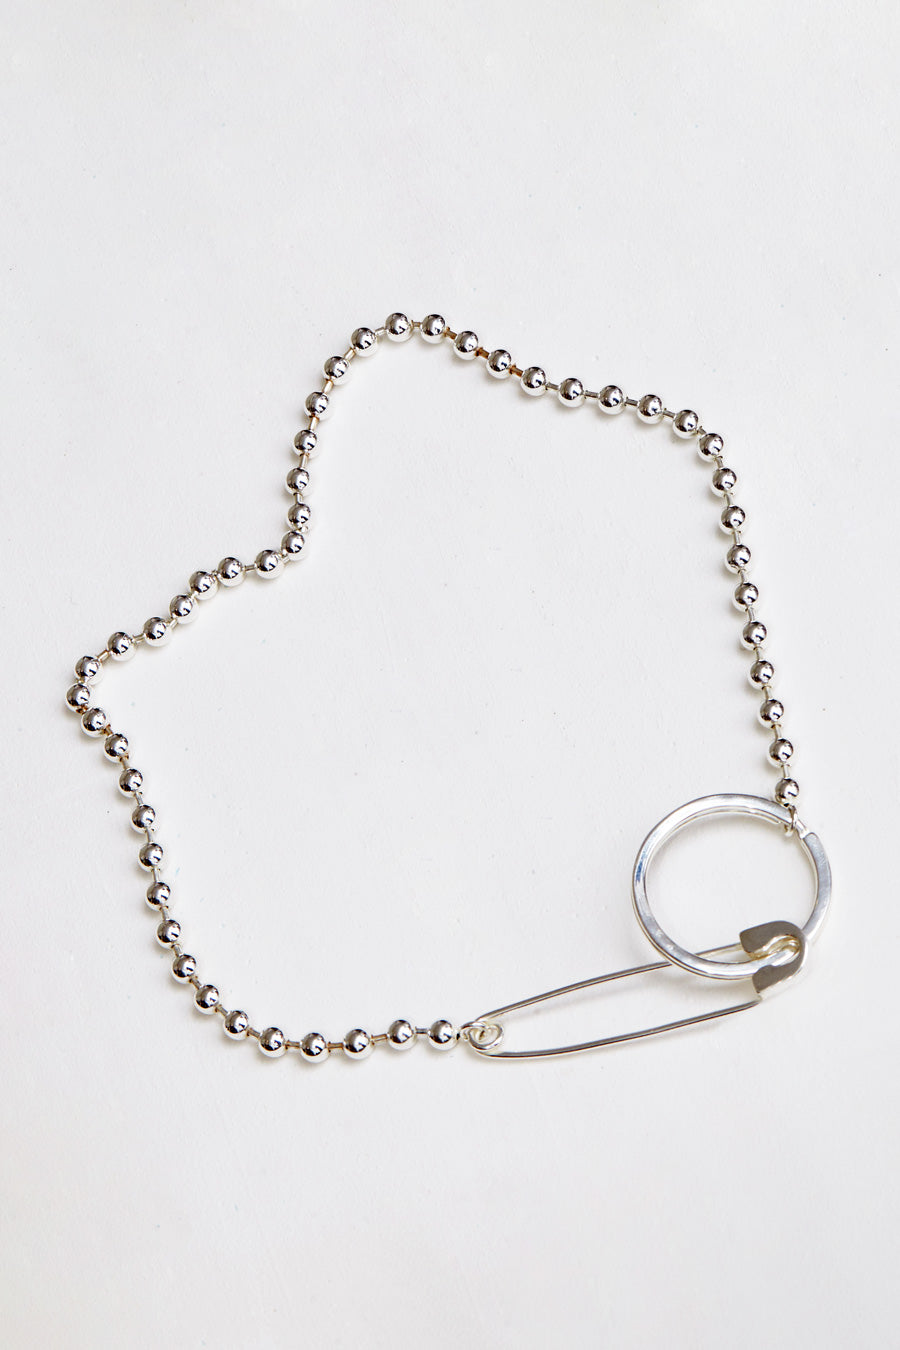 Biis Ball Key Ring/ Necklace in Sterling Silver